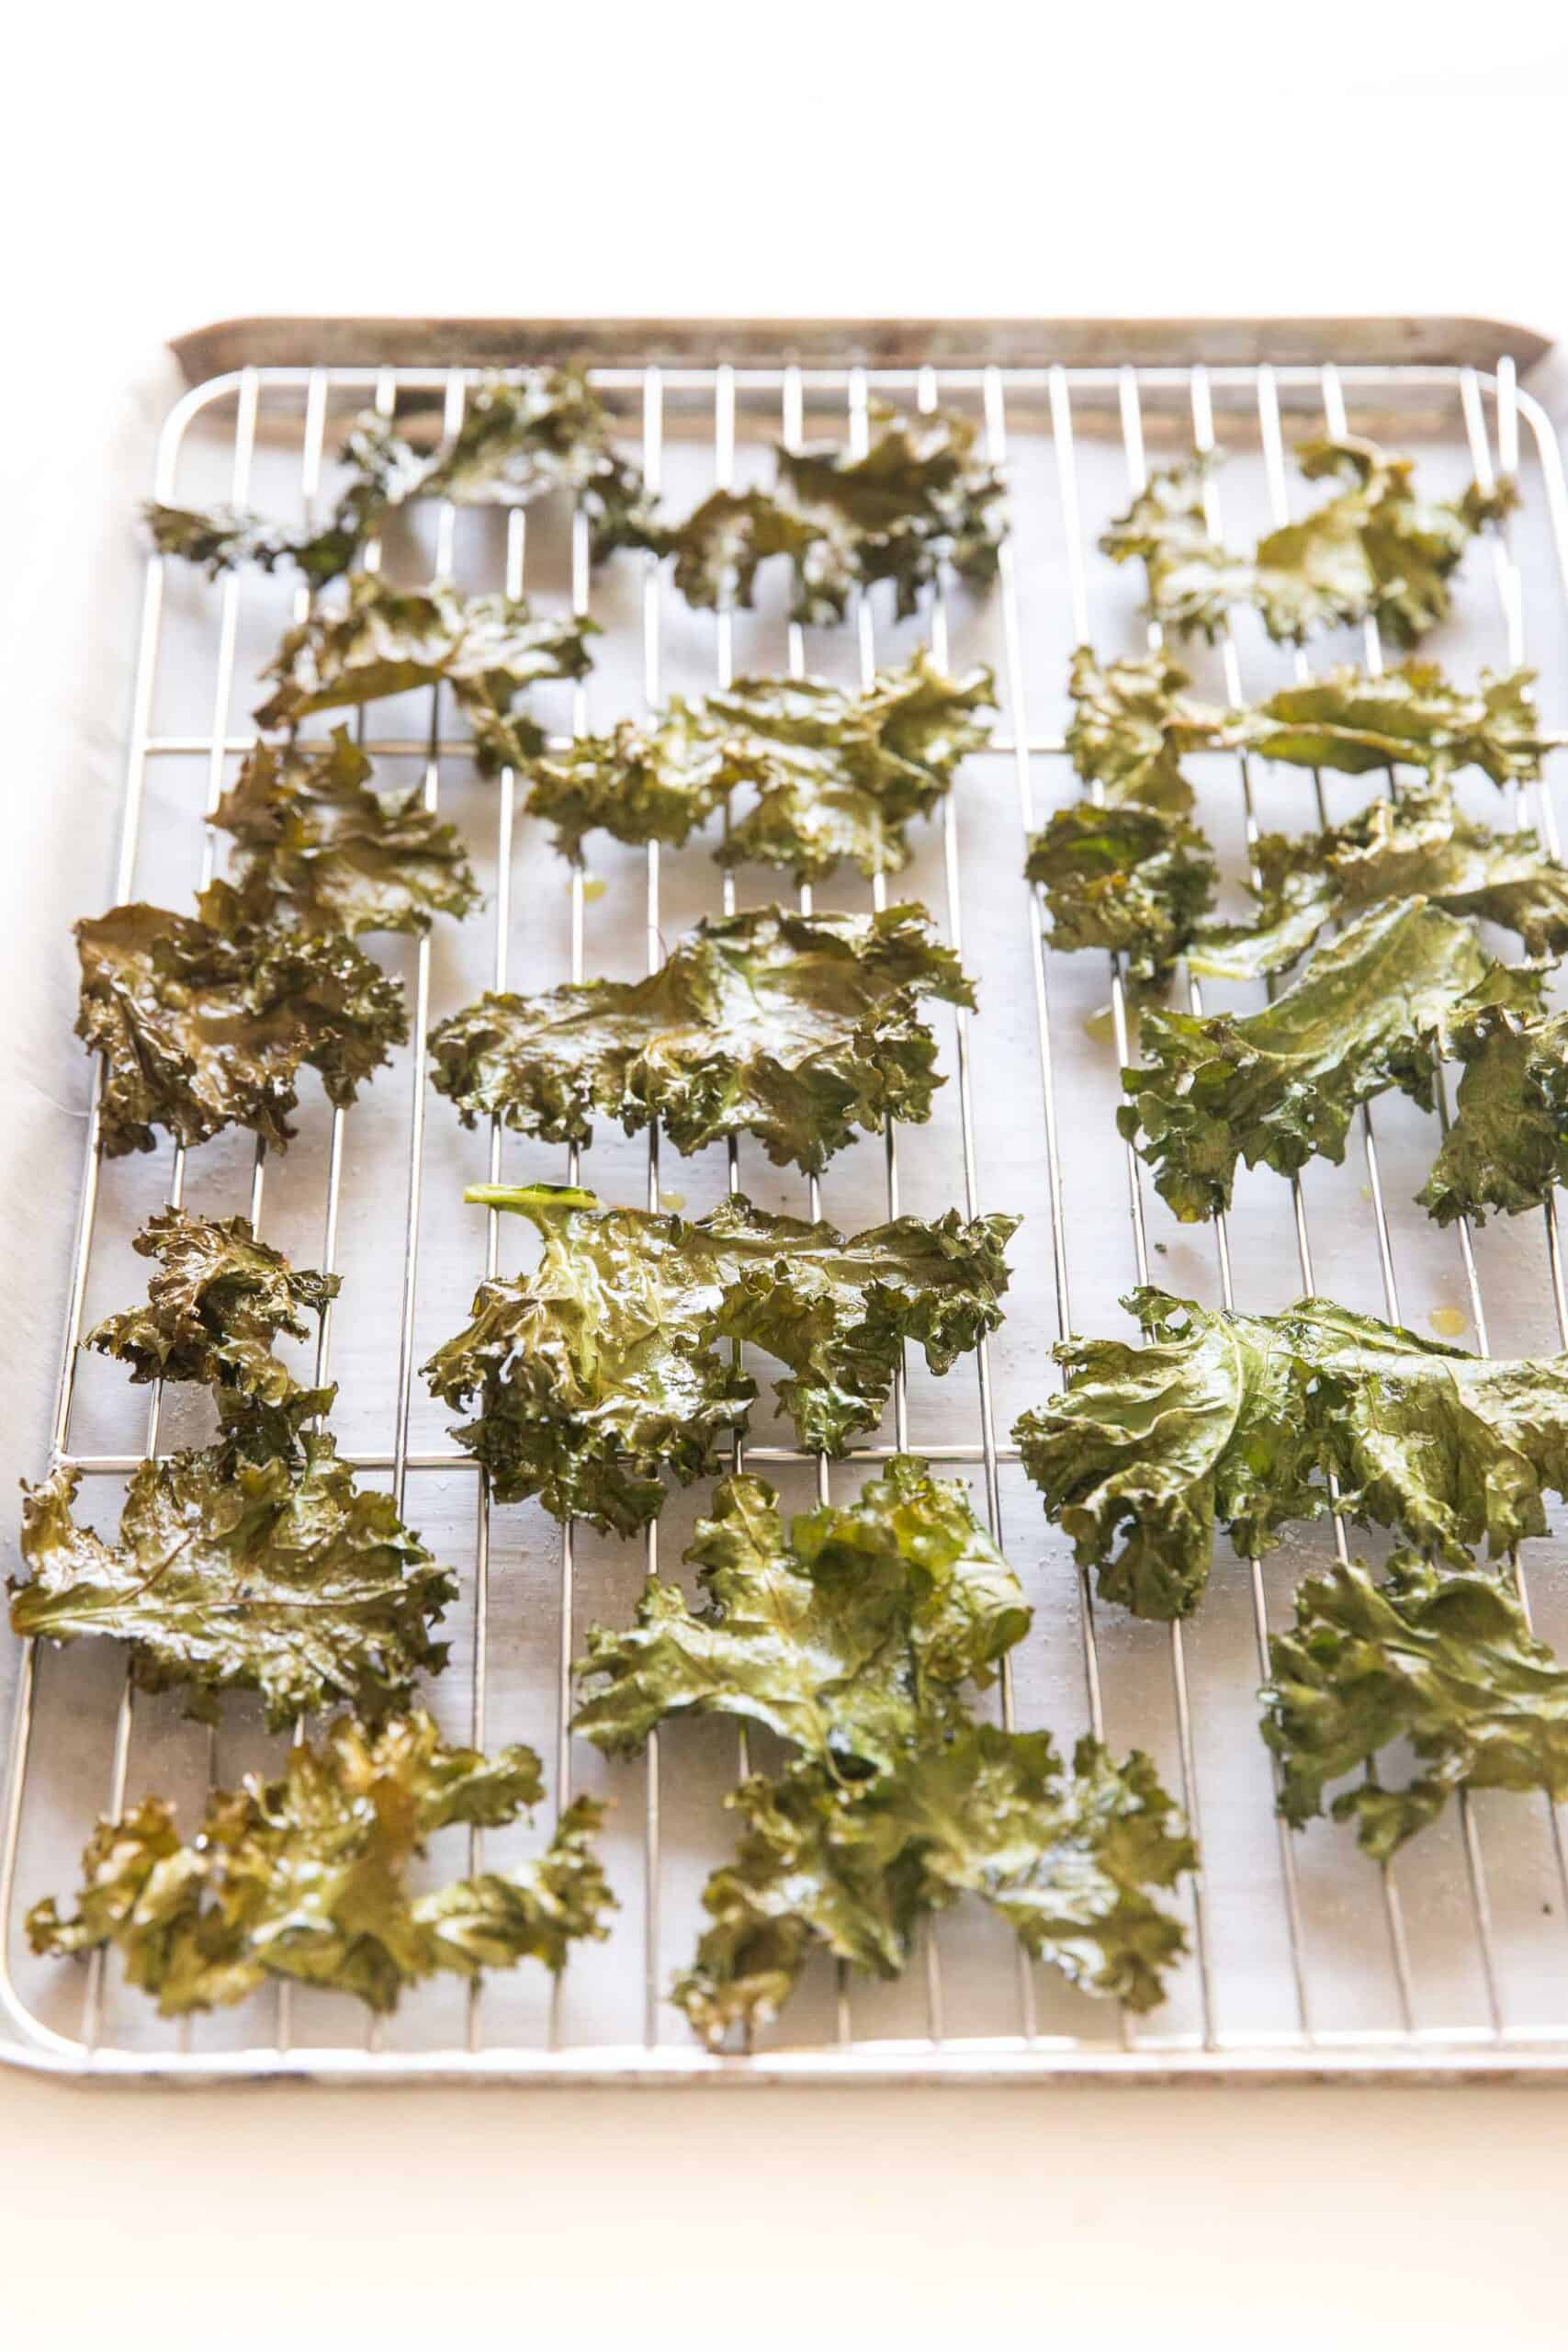 crispy baked kale chips on a rimmed baking sheet